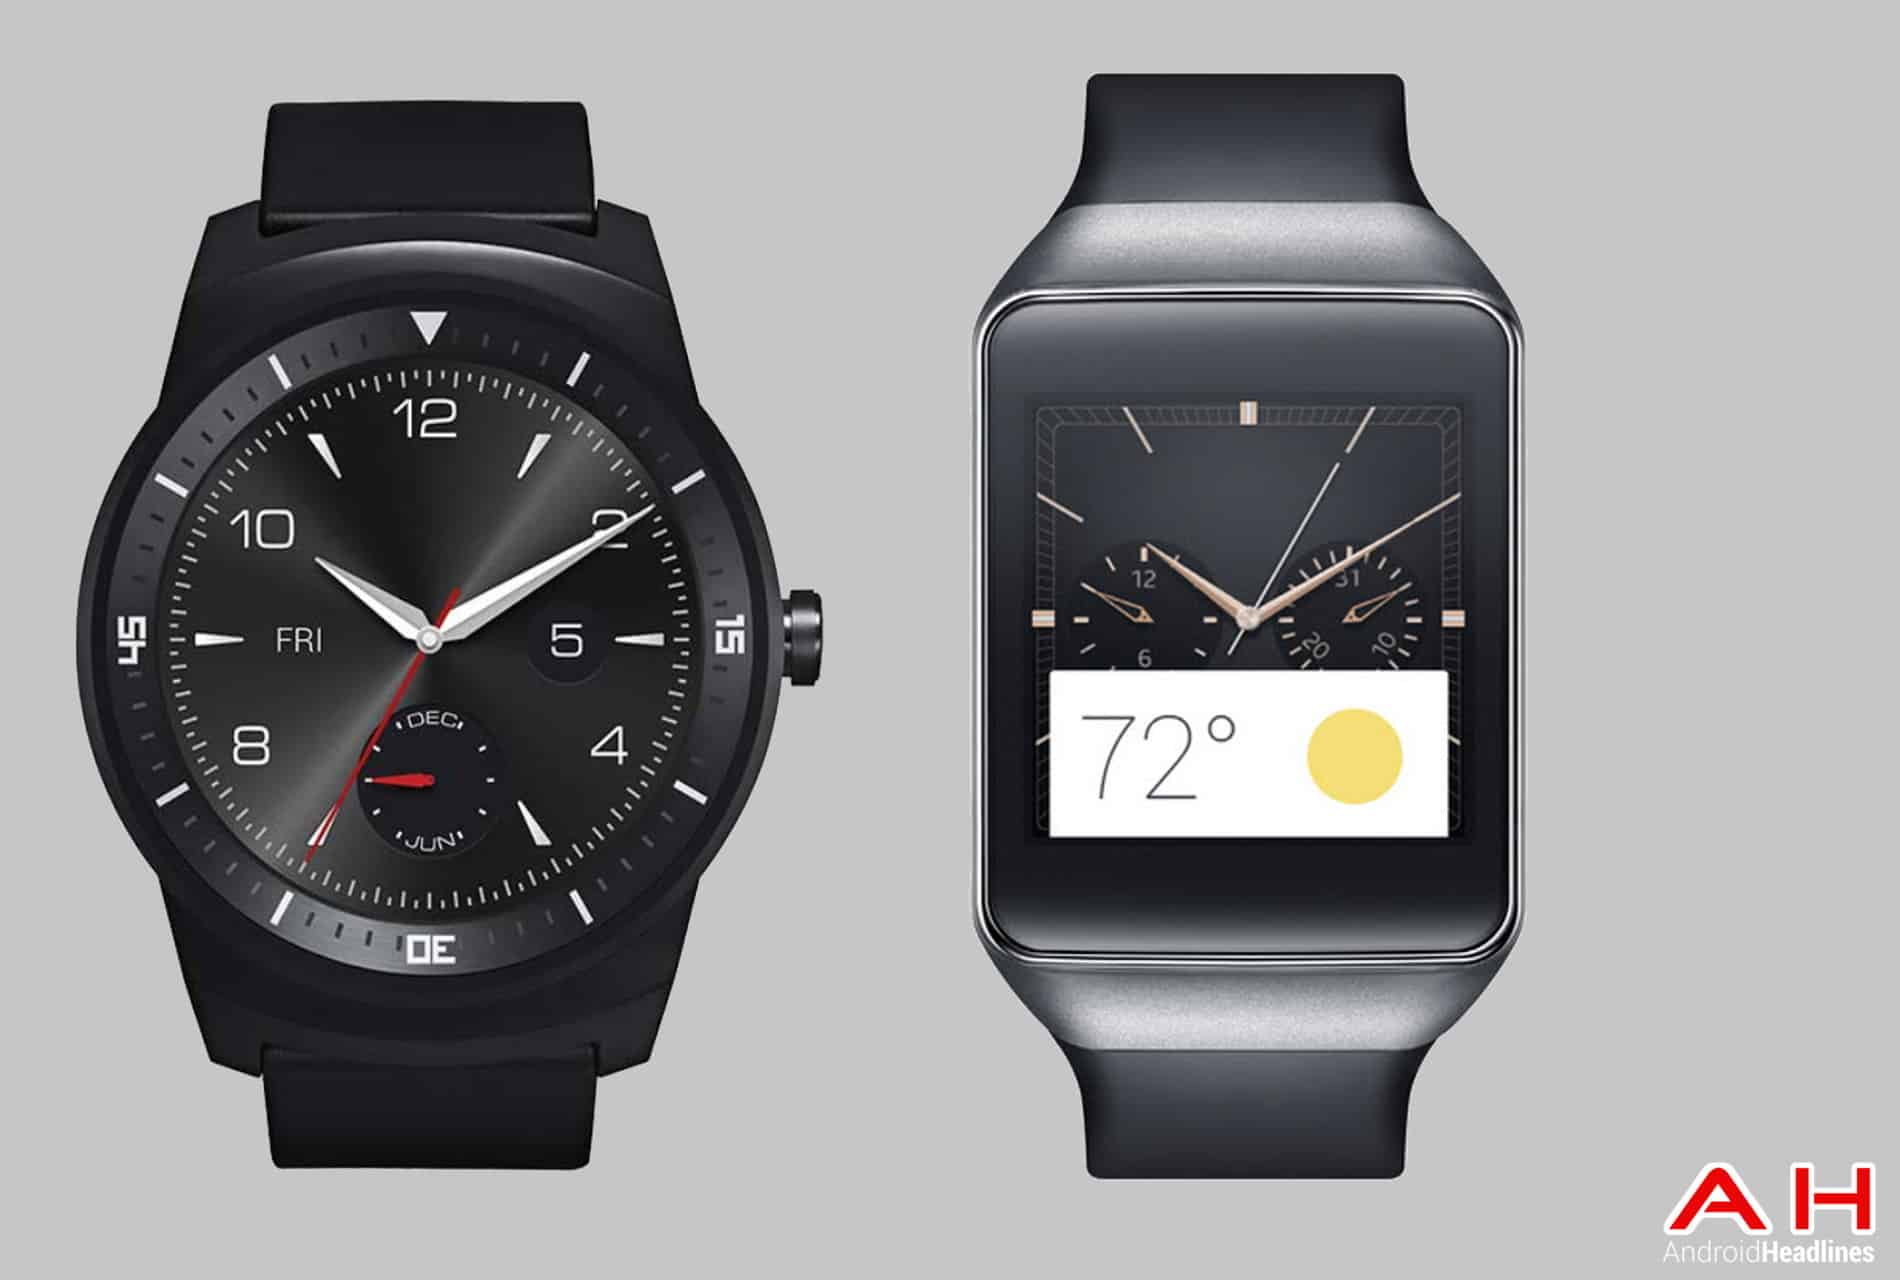 Samsung Gear Live Watch Faces lg g Watch r vs Gear Live Cam